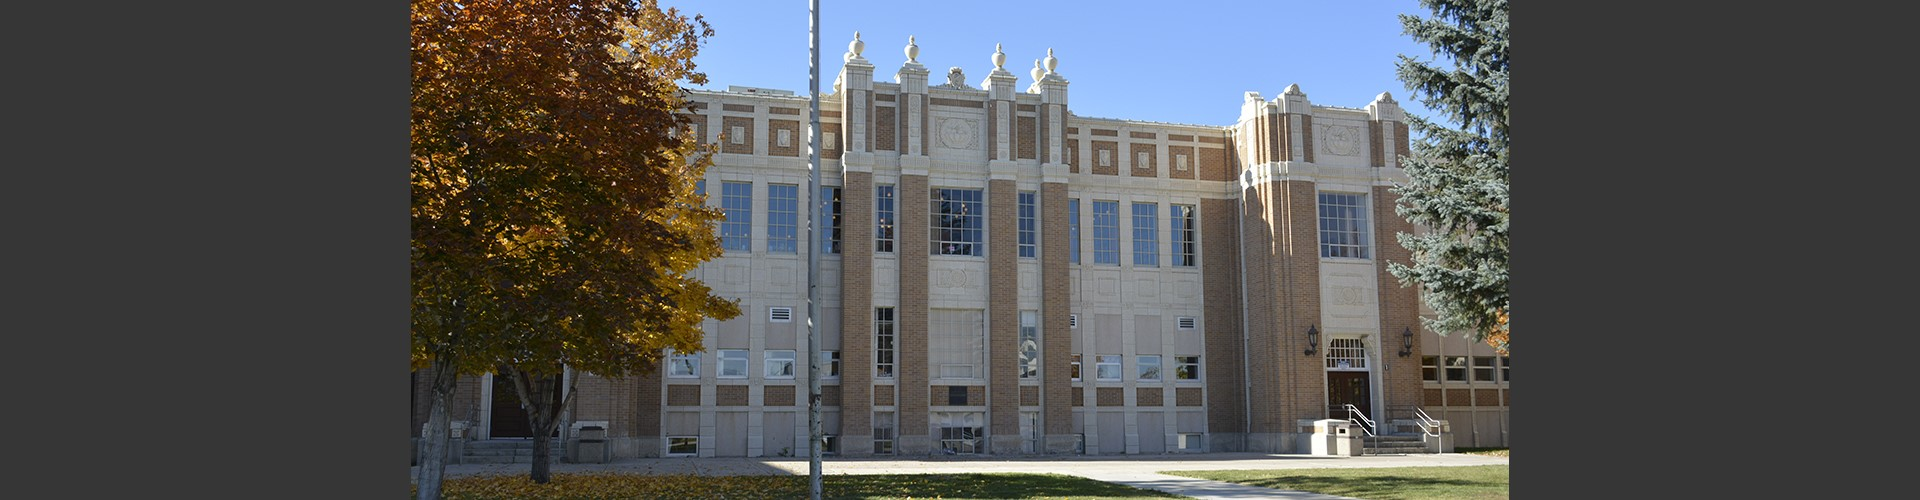 Front of Pocatello High School